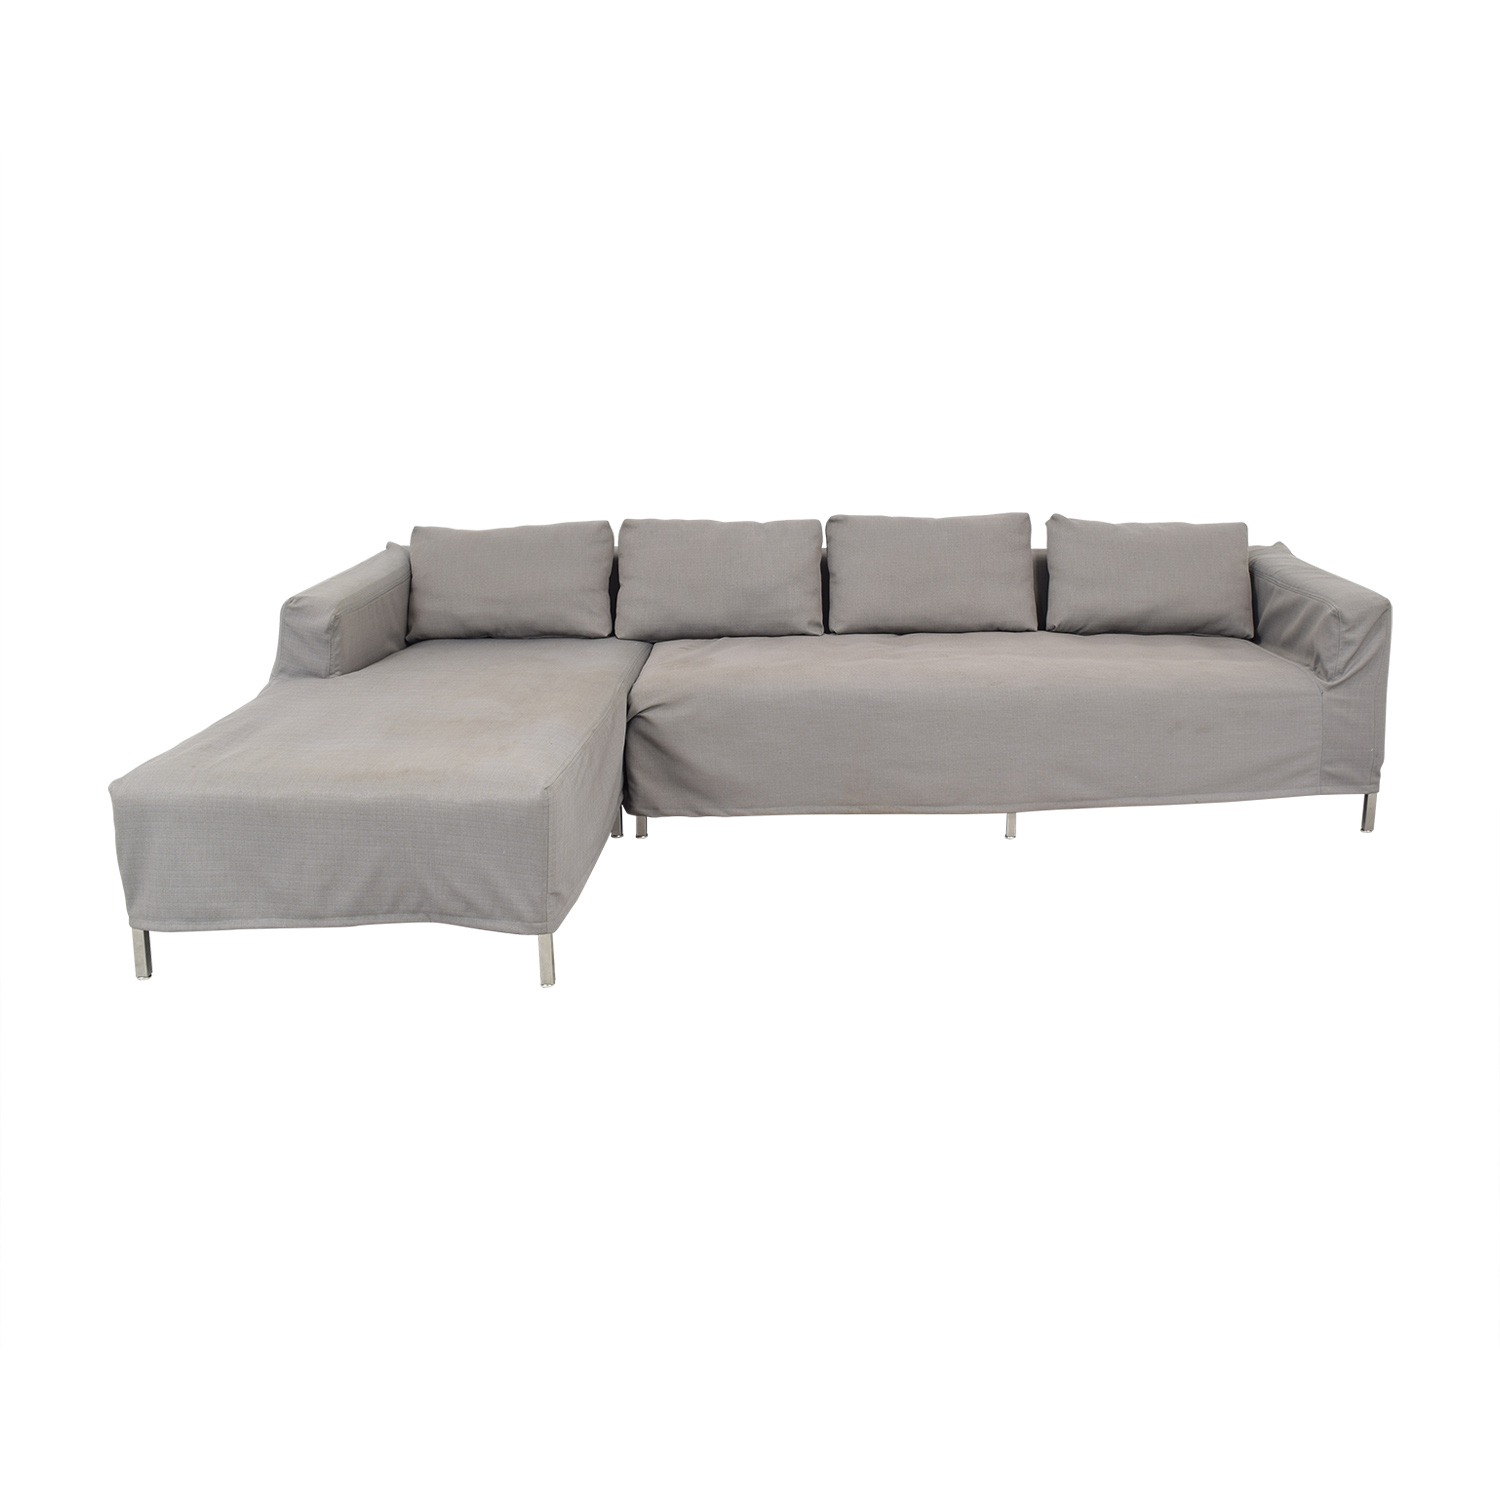 shop Gus Modern Gus Modern Sectional Sofa with Chaise online